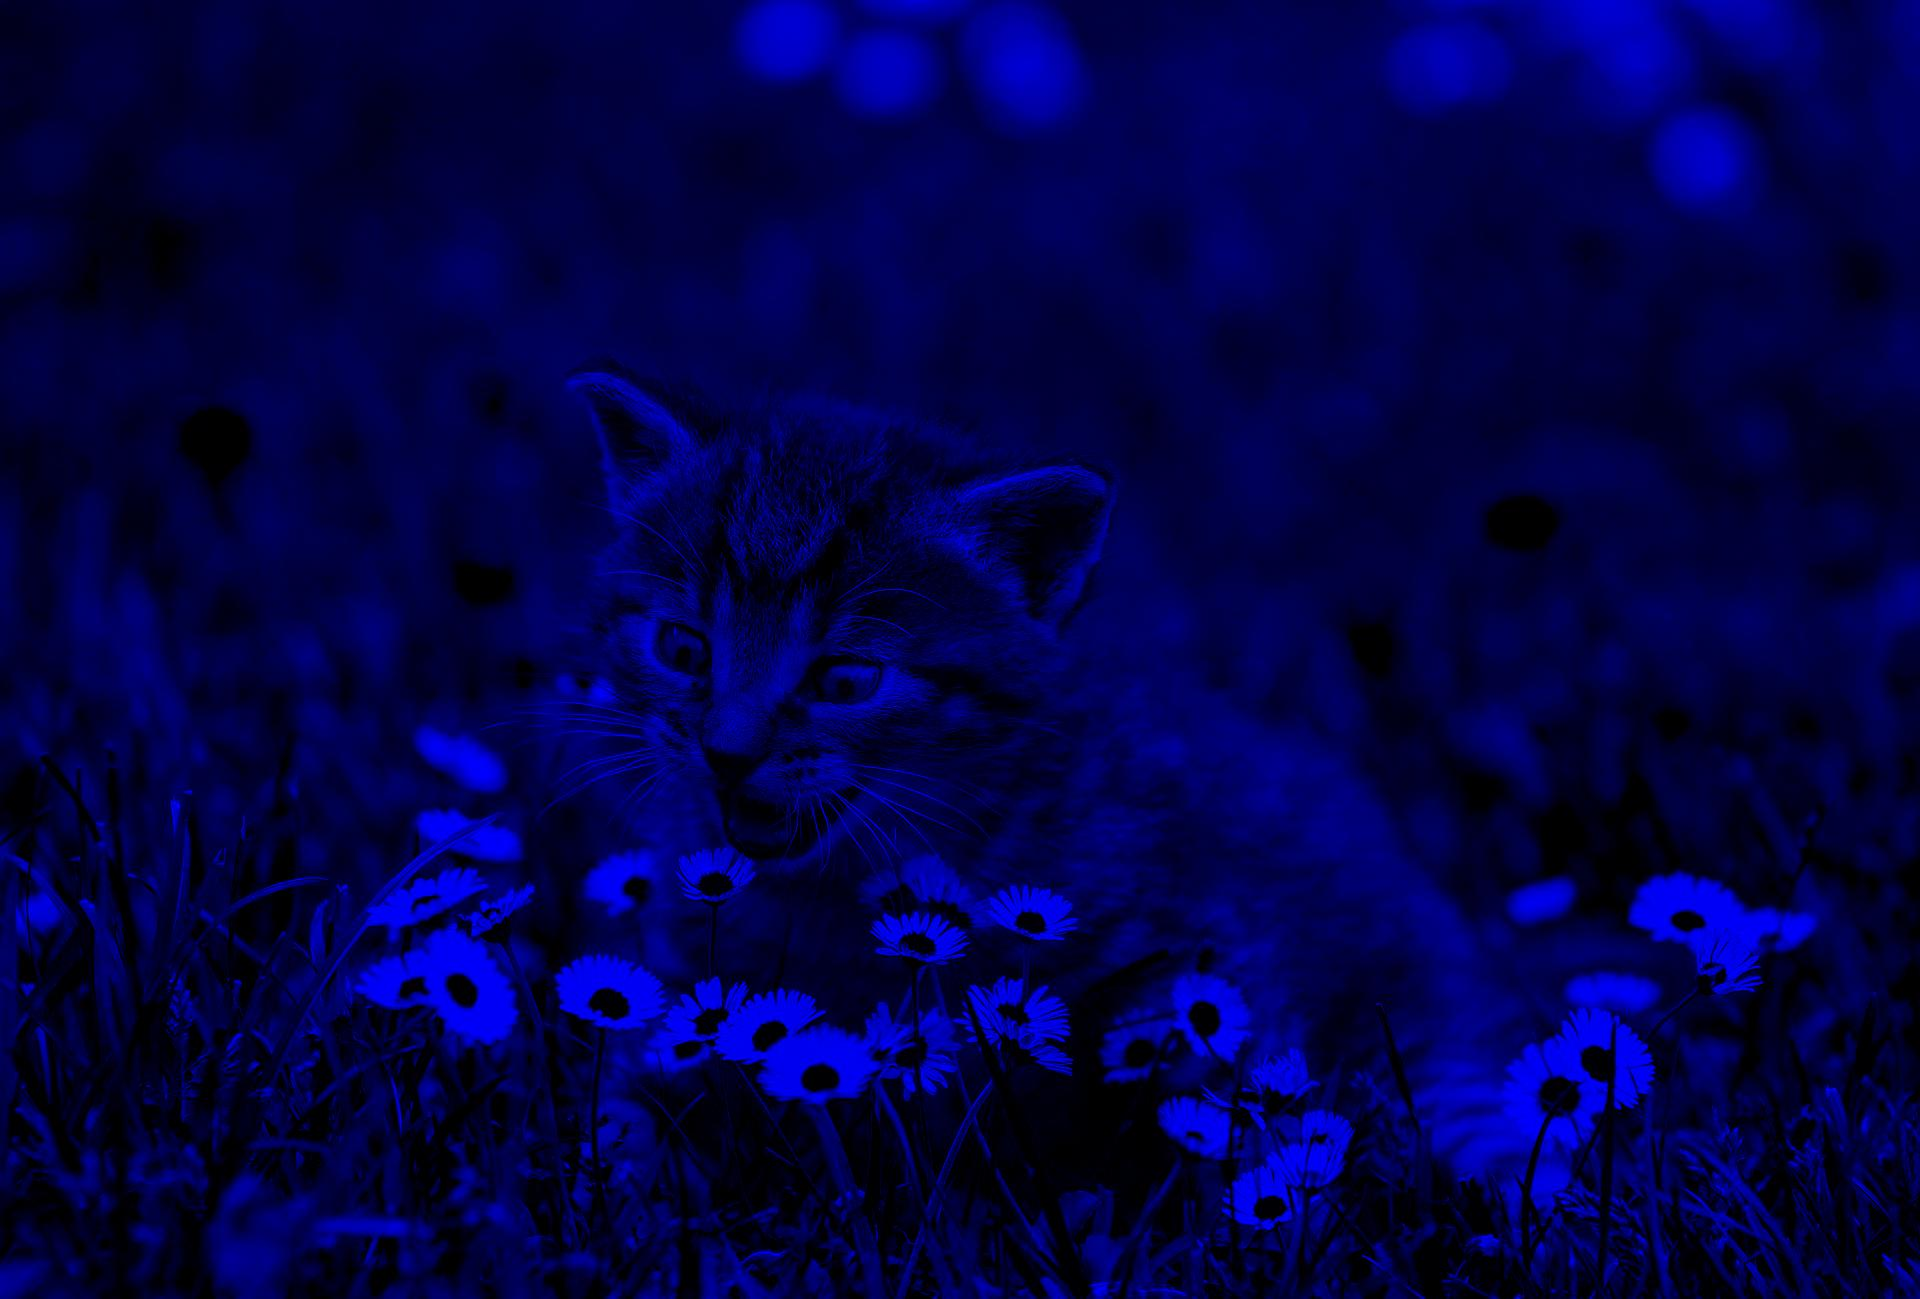 A blue version of the kitty.